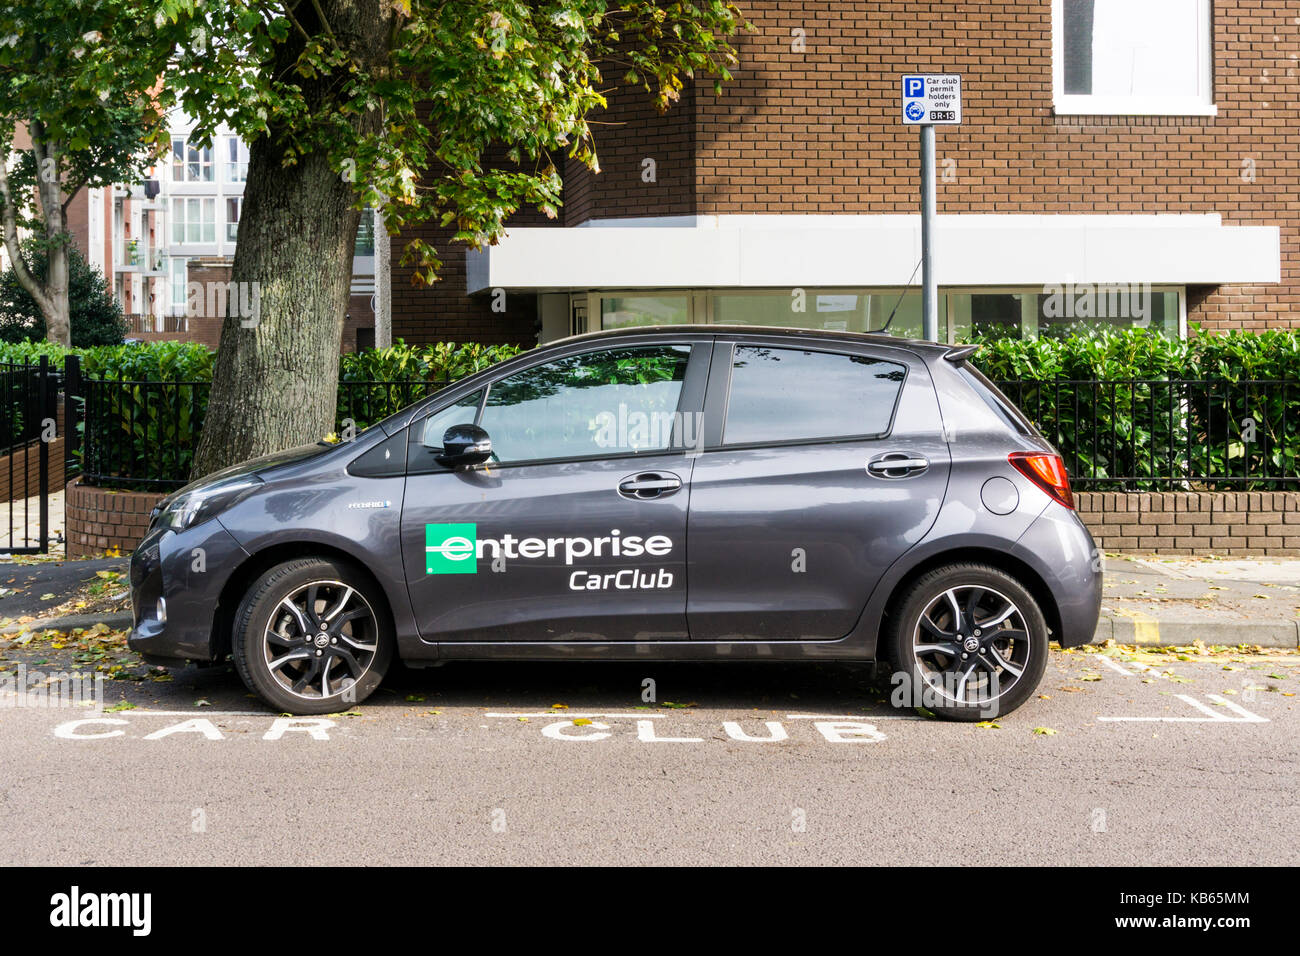 An Enterprise Car Club Hybrid In A Preferential Dedicated Members Only Parking Space